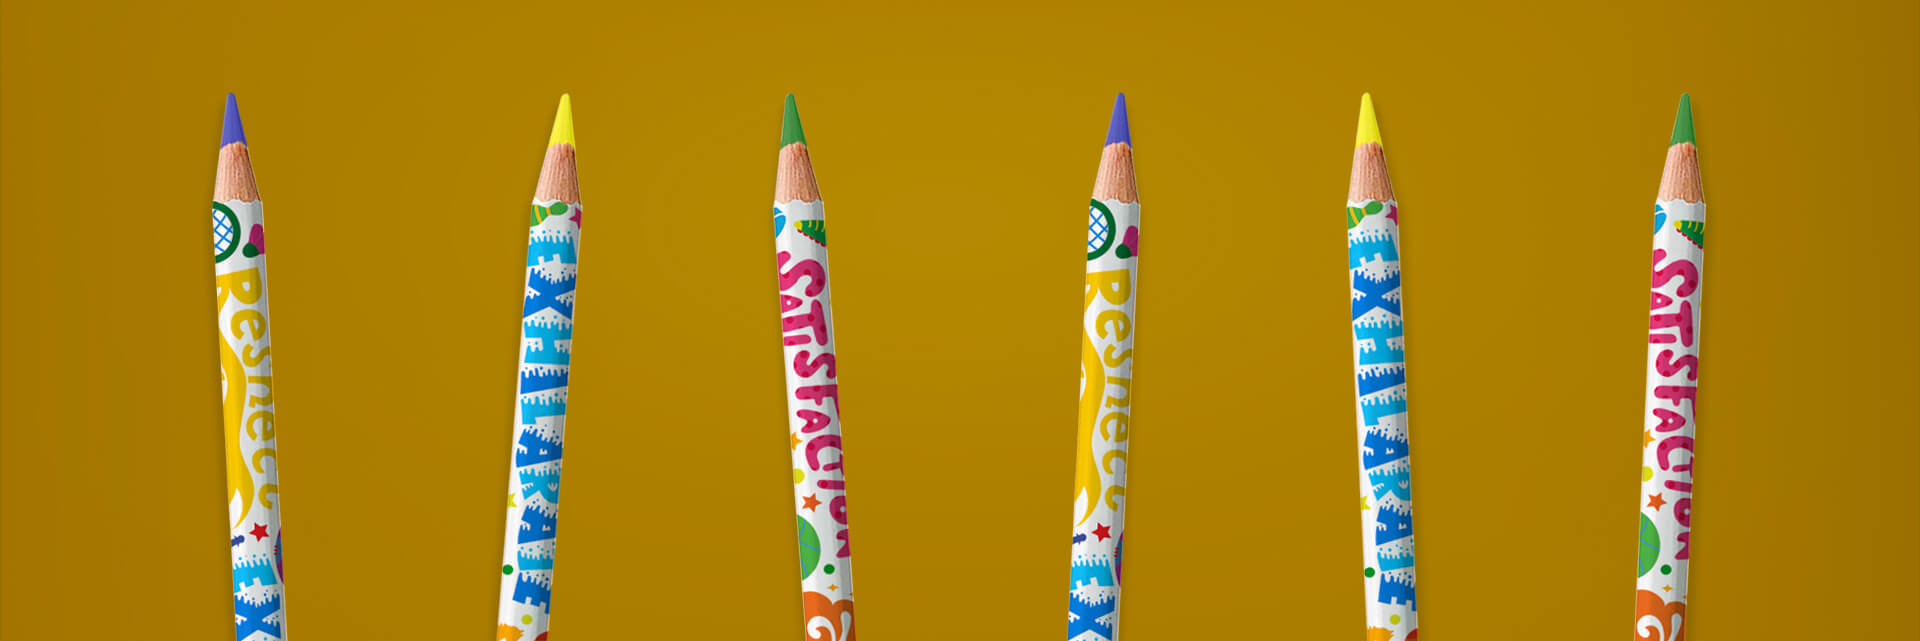 Pencil_Website